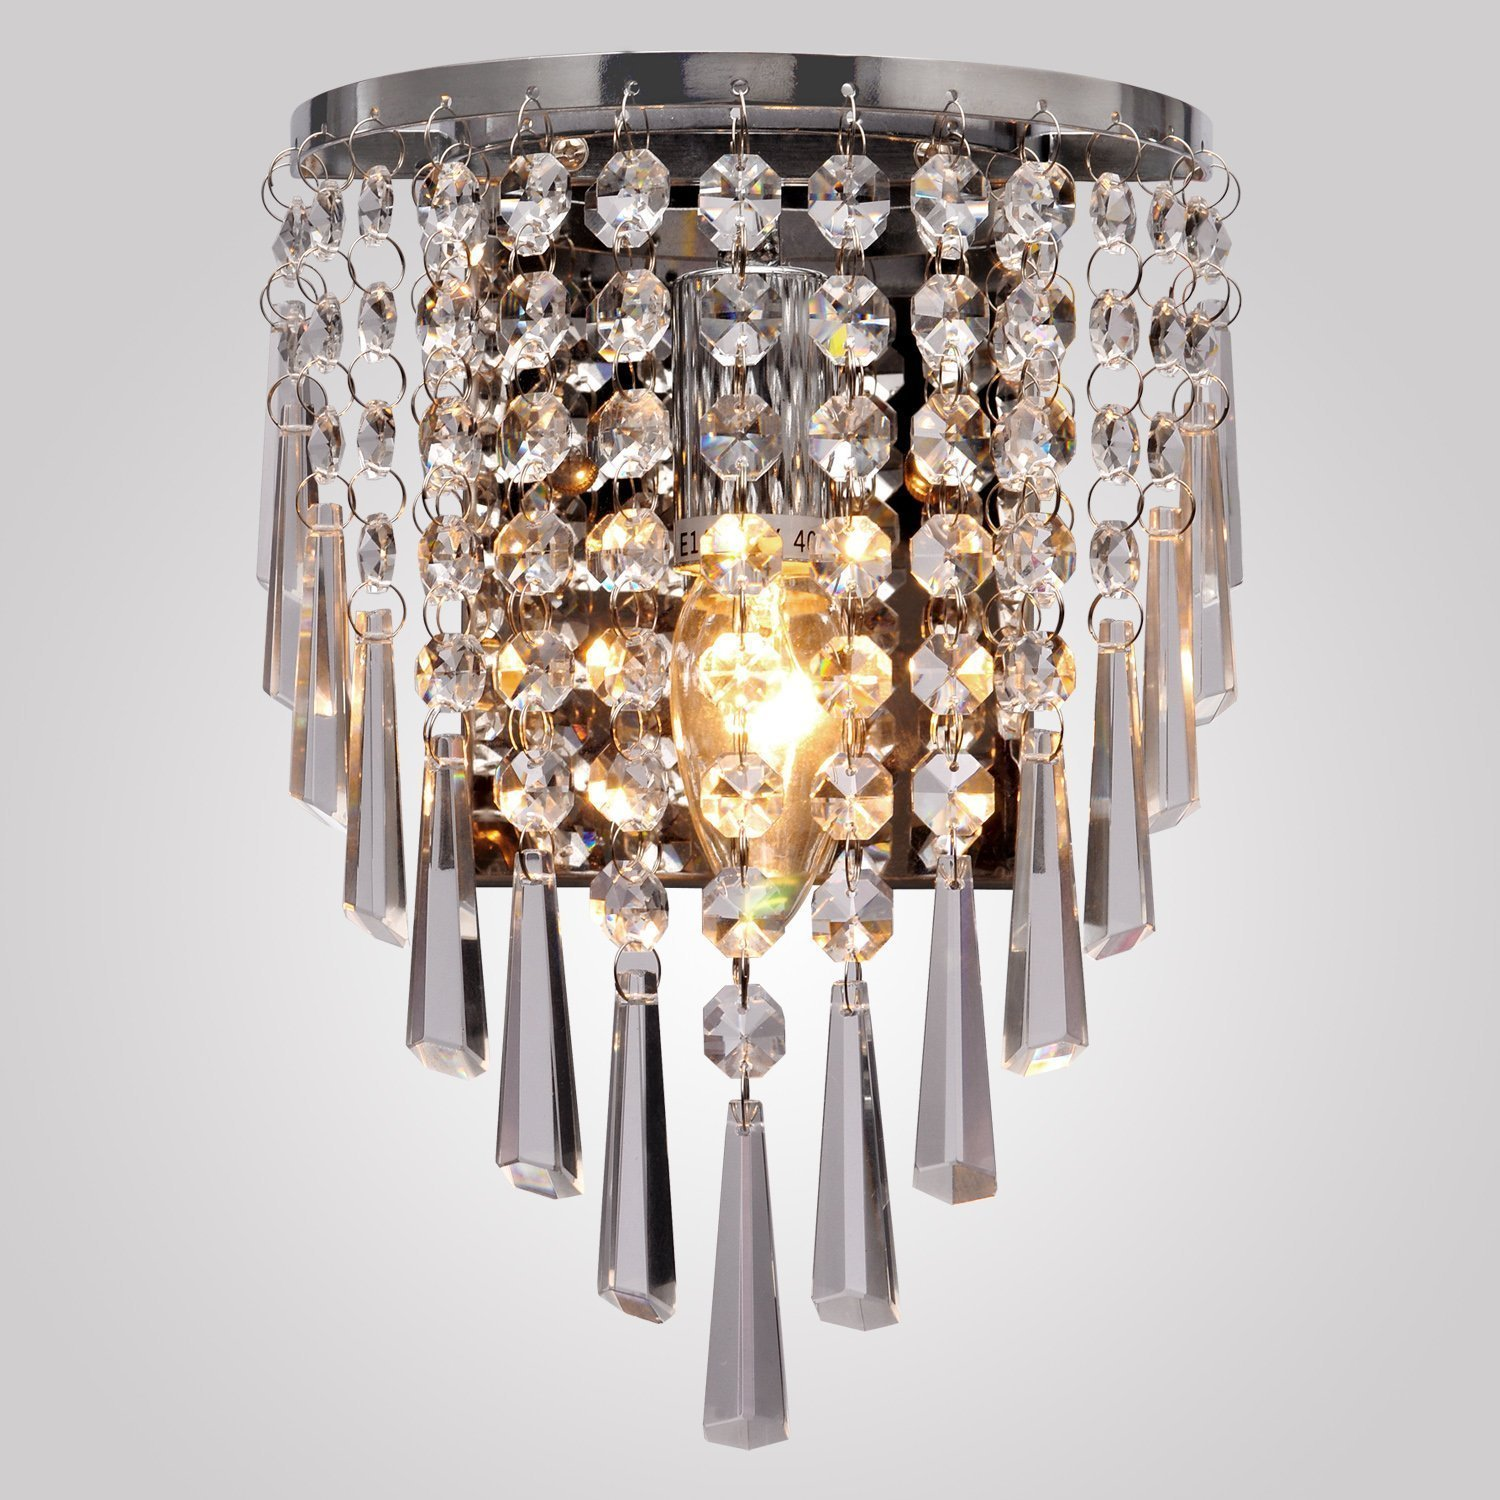 Vintage Antique Style Crystal Droplet Sconce Wall Lamp Light Fixture Lighting eBay